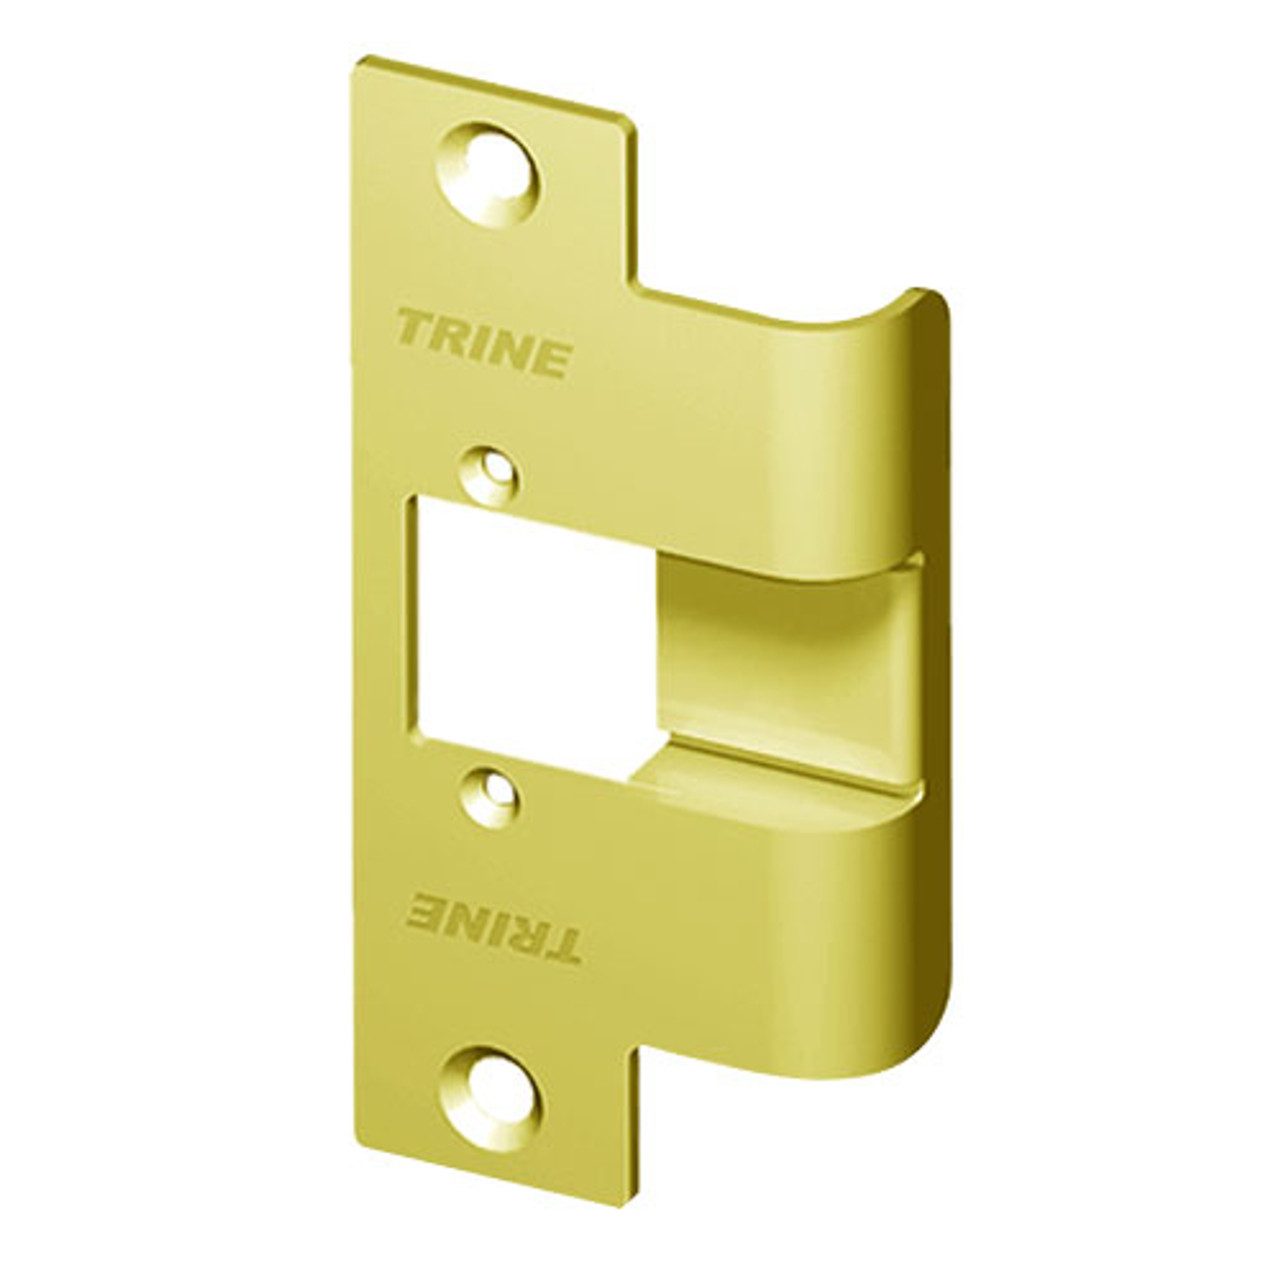 478X-375-US3 Trine 3000 Series Asa Strike Extended Faceplate in Bright Brass Finish